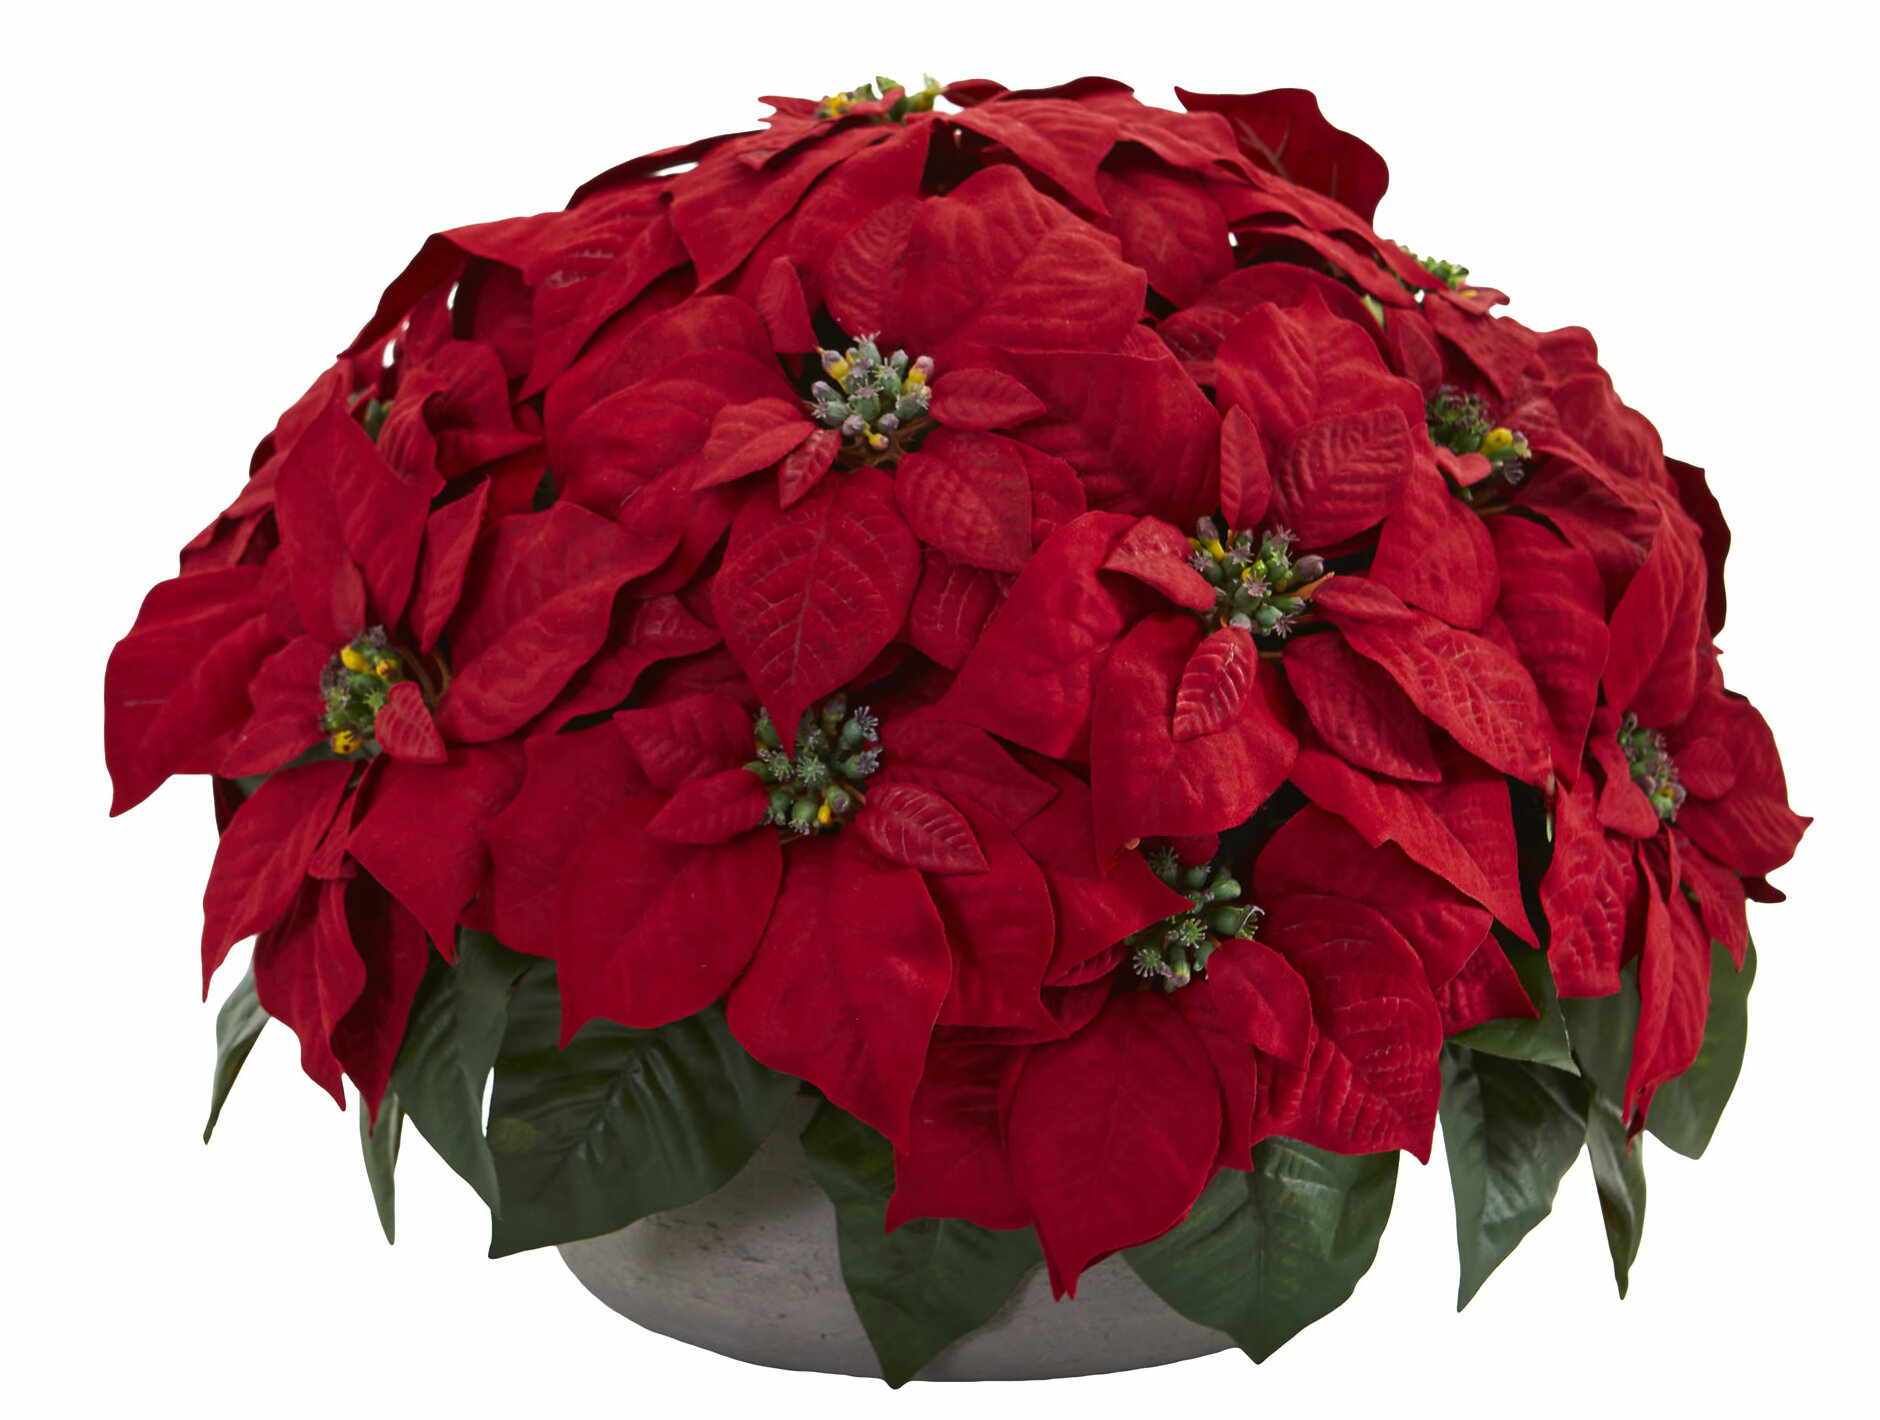 The Holiday Aisle 14 Artificial Foliage Plant In Planter Wayfair